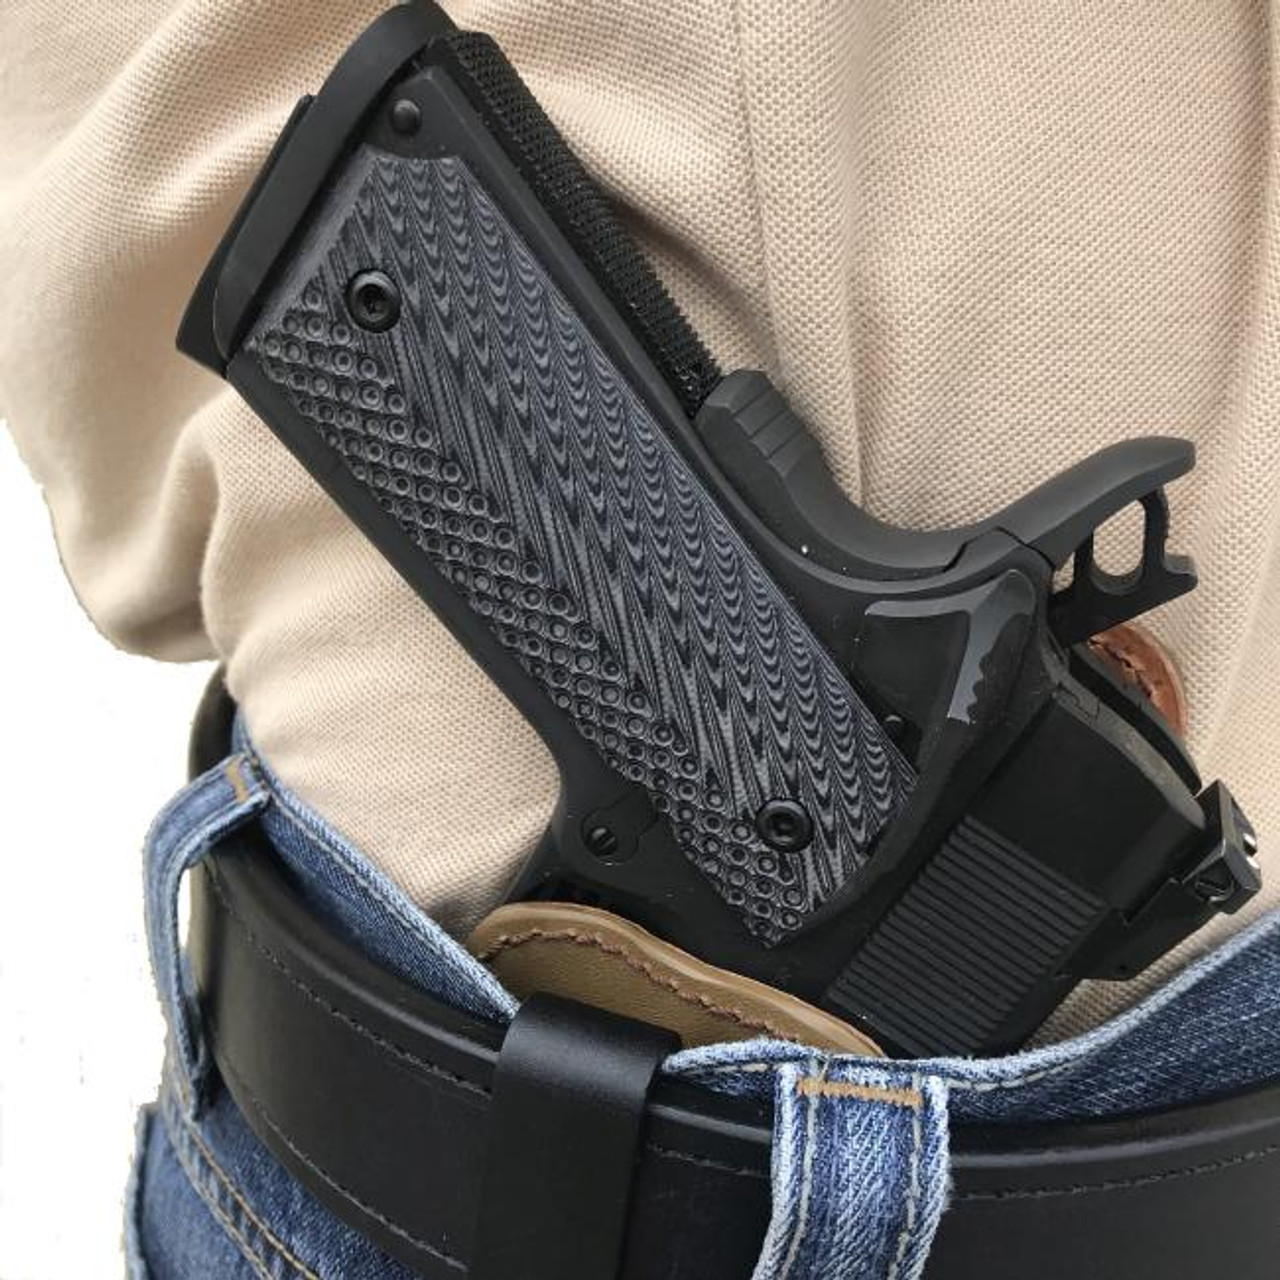 Pro Carry 7 Leather Gun Holster LH RH For Sig Sauer 1911 C3